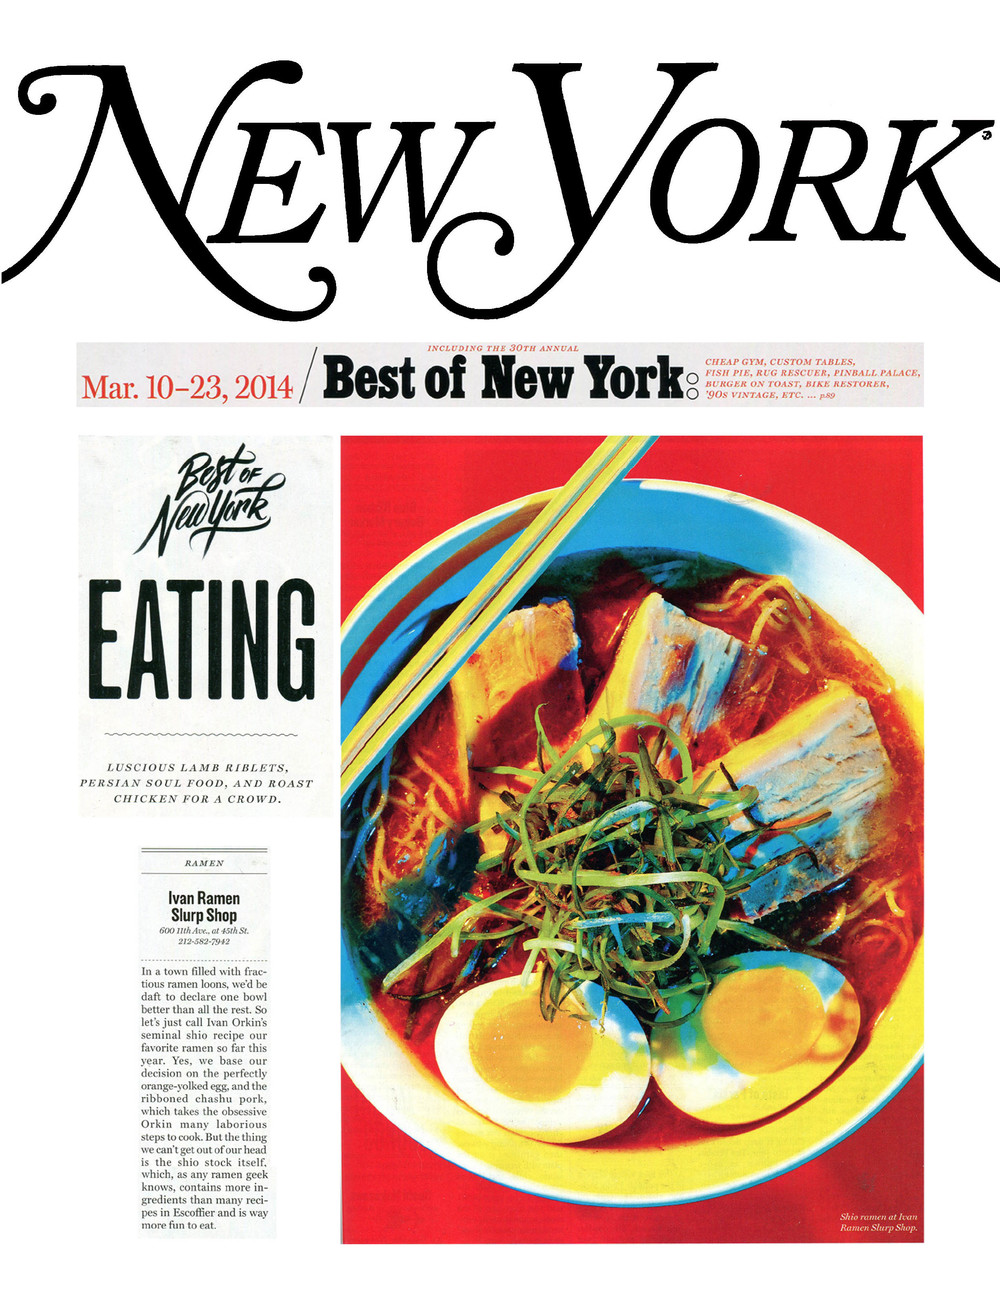 Ivan Ramen Slurp Shop Ny Mag Slurp Shop Best Of New York — Ivan Ramen